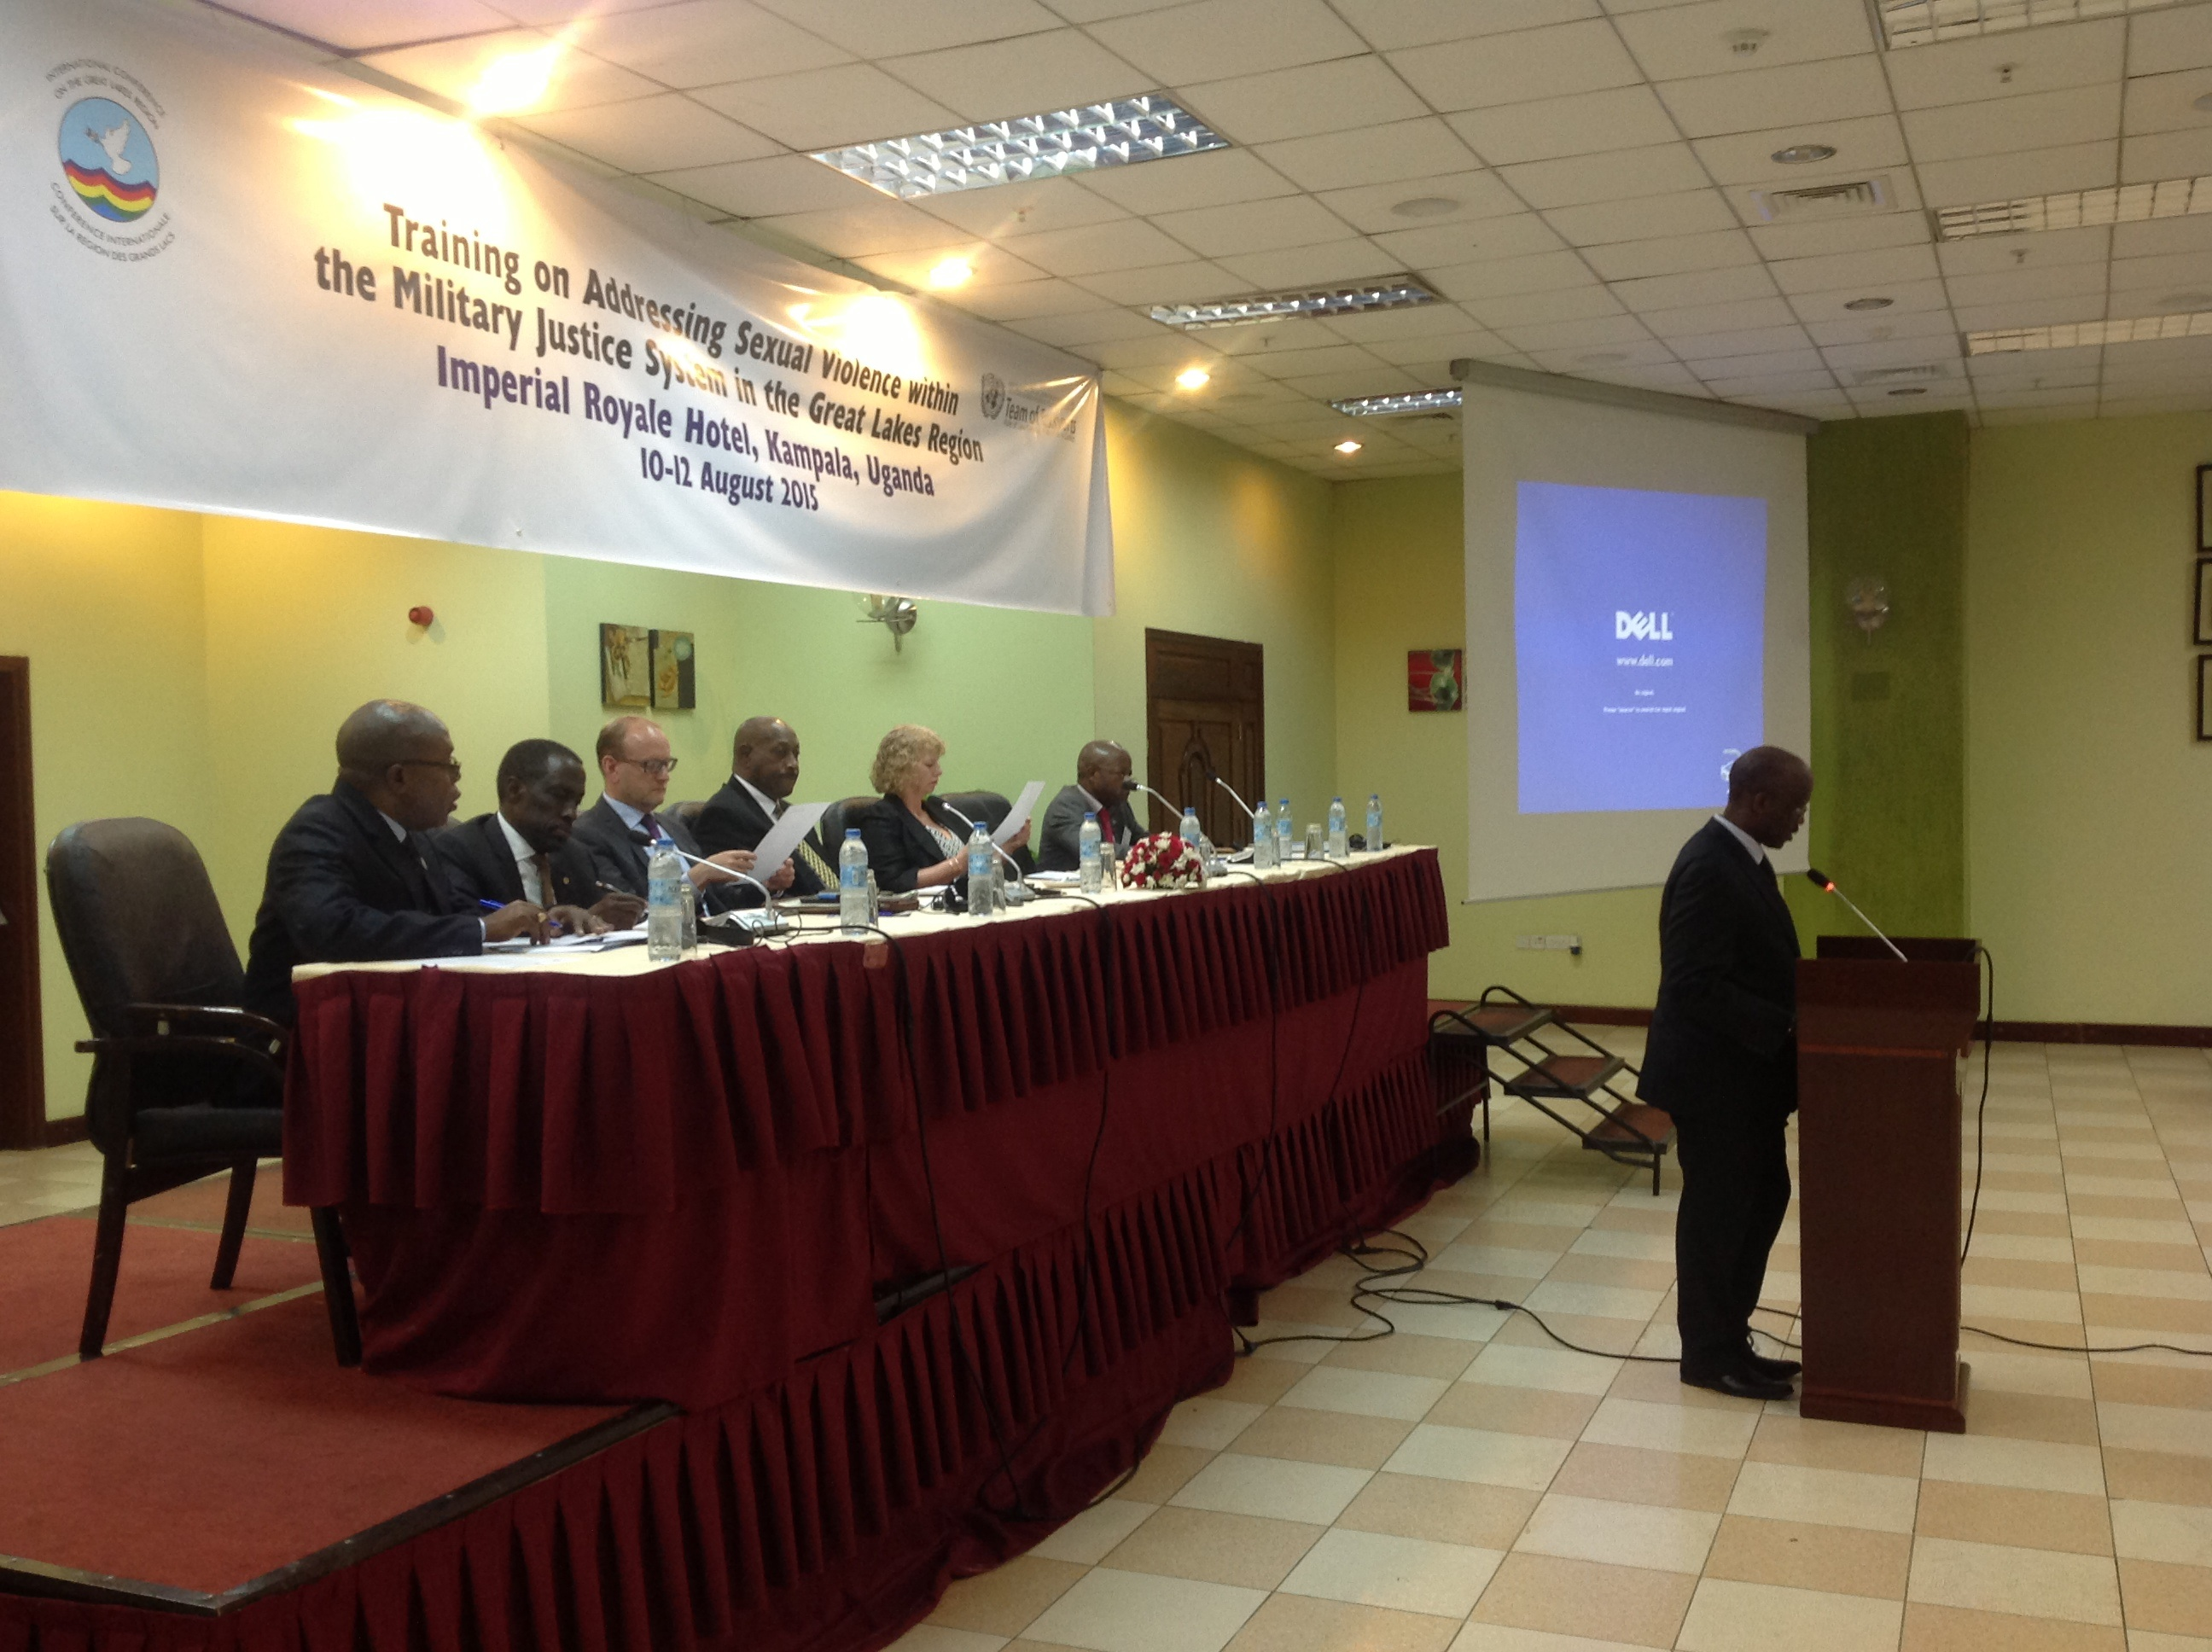 A speaker gives a presentation at the International Conference on the Great Lakes Region Regional Training Facility In Kampala, Uganda.  The training addressed sexual violence within the military justice system, and was held Aug. 10-12, 2015.  (Courtesy photo)